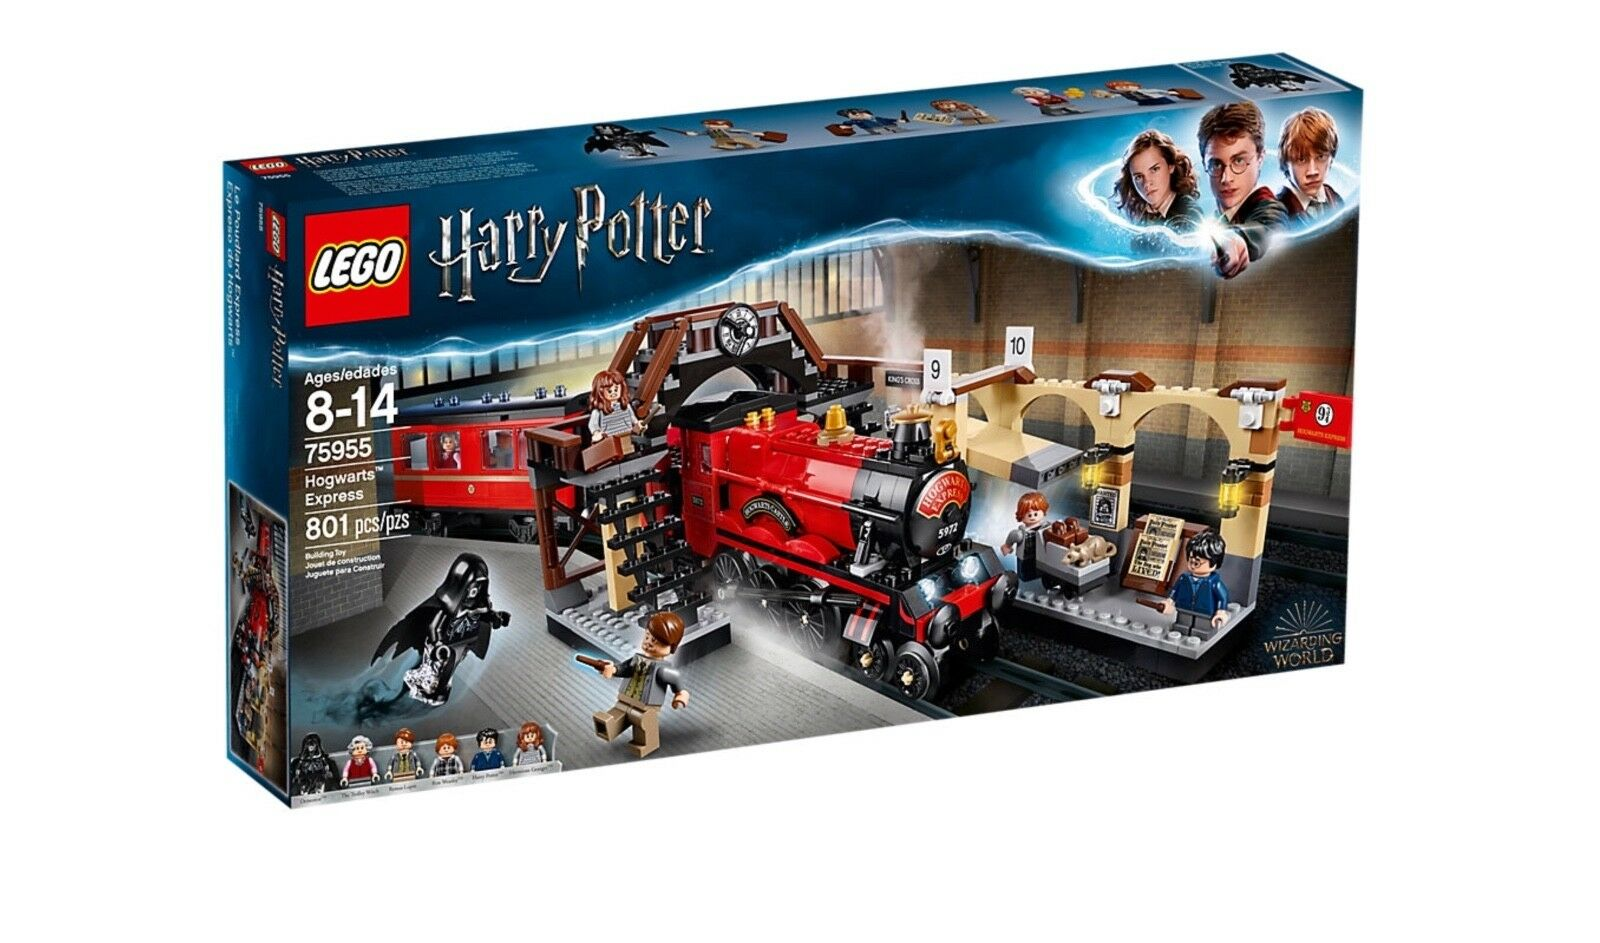 LEGO Harry Potter Hogwarts Express Set 75955 2018 Set Nuovo In Box Free Shipping